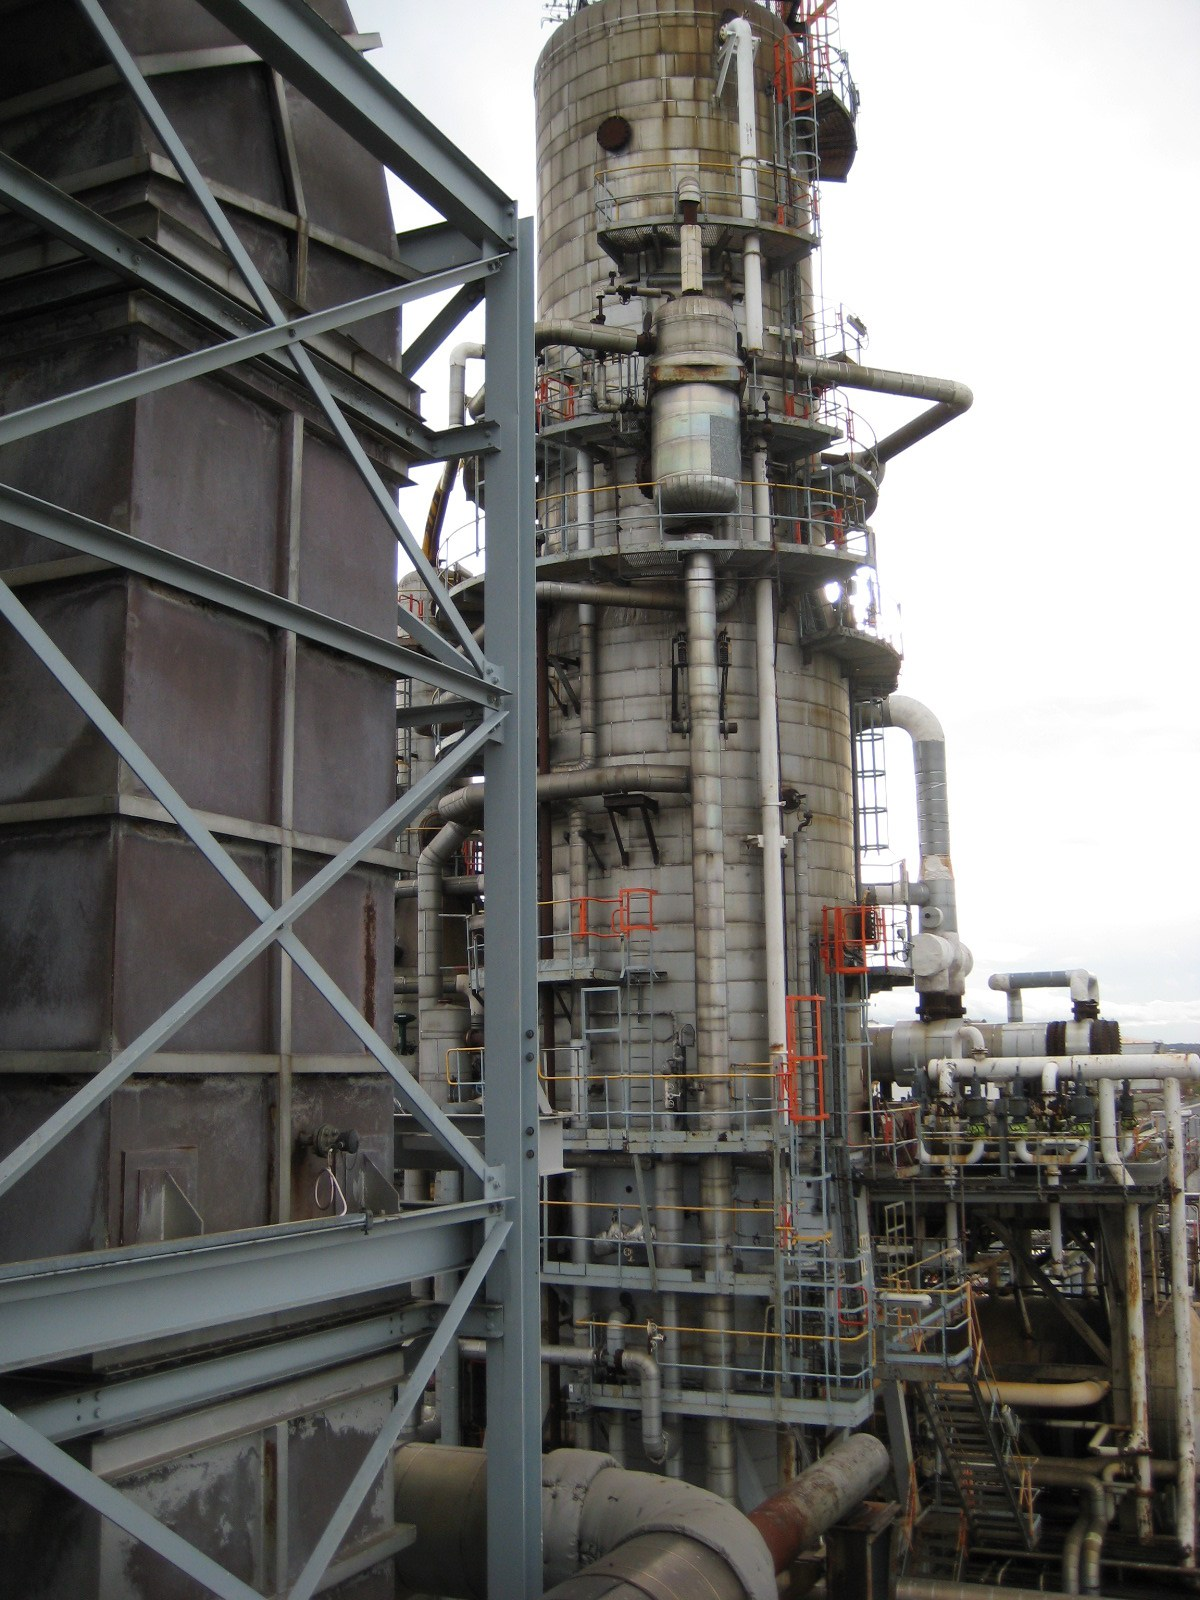 117,000 BPD Crude Oil Distillation Unit for Sale at Phoenix